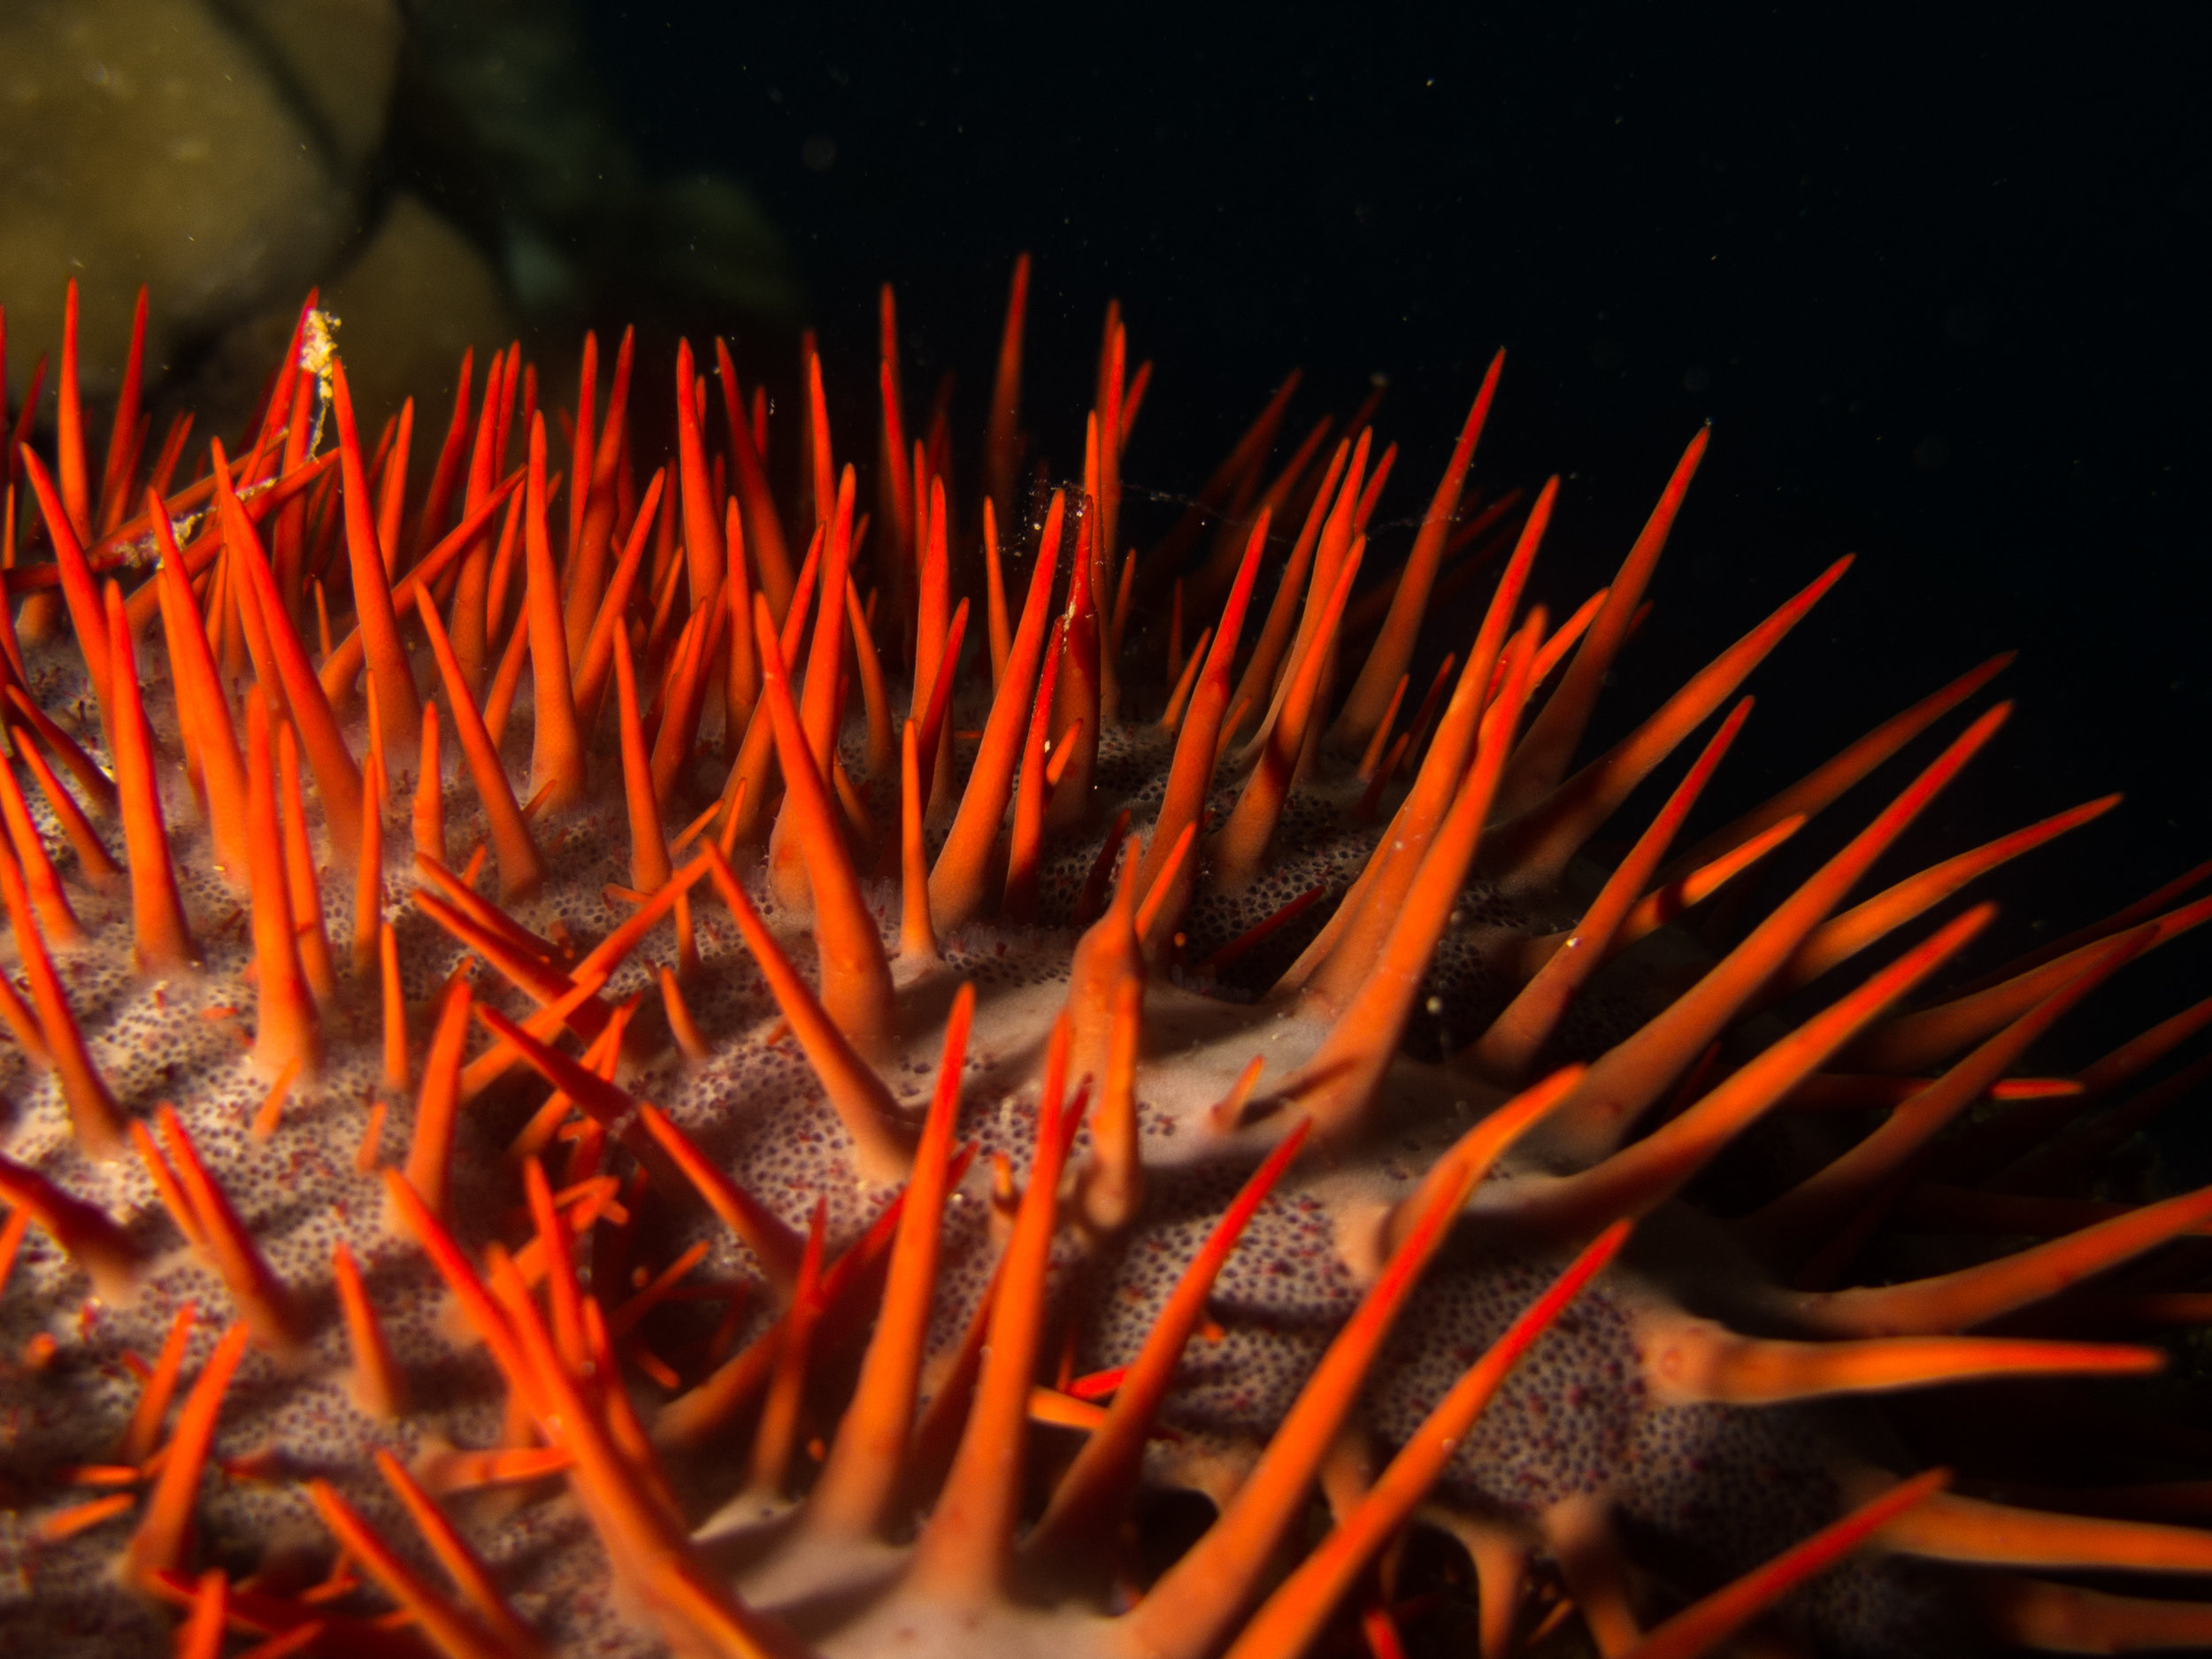 A Game of Thorns - Frequently Asked Questions about Crown-of-Thorns starfish, their population outbreaks and the vinegar method.